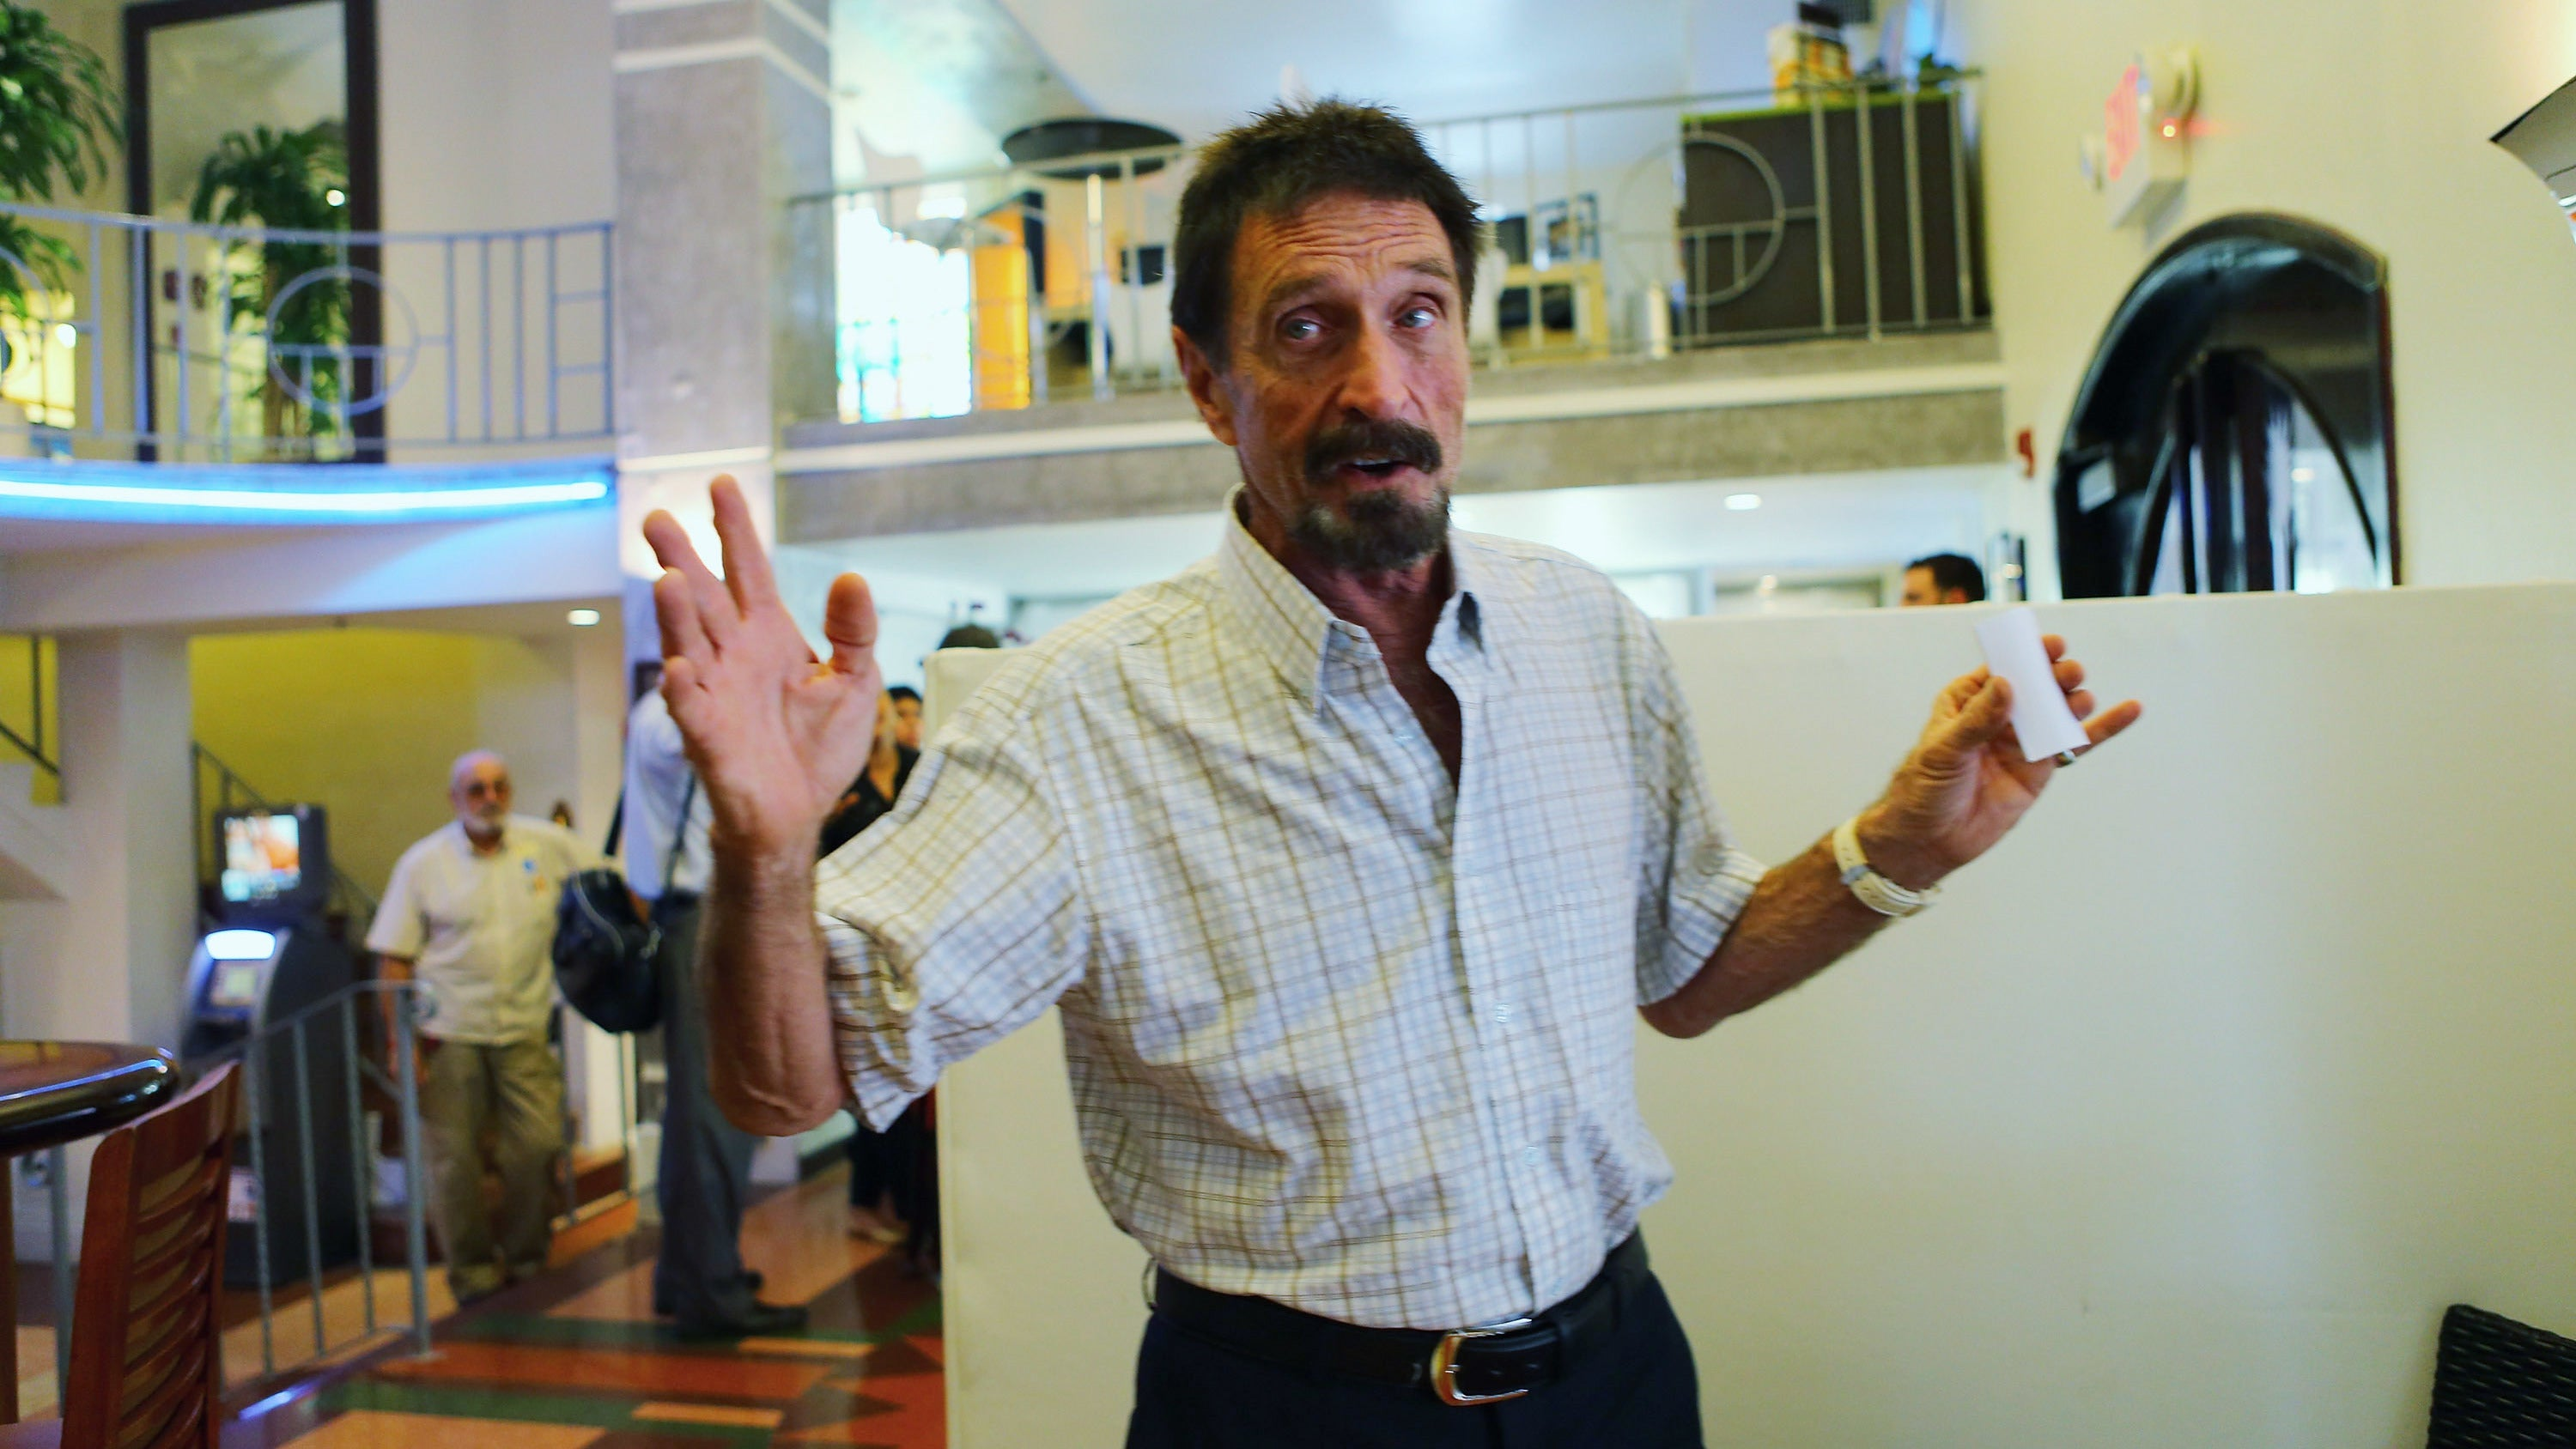 John McAfee-Backed Cryptocurrency's Thousands Of Investors Exposed In Data Breach